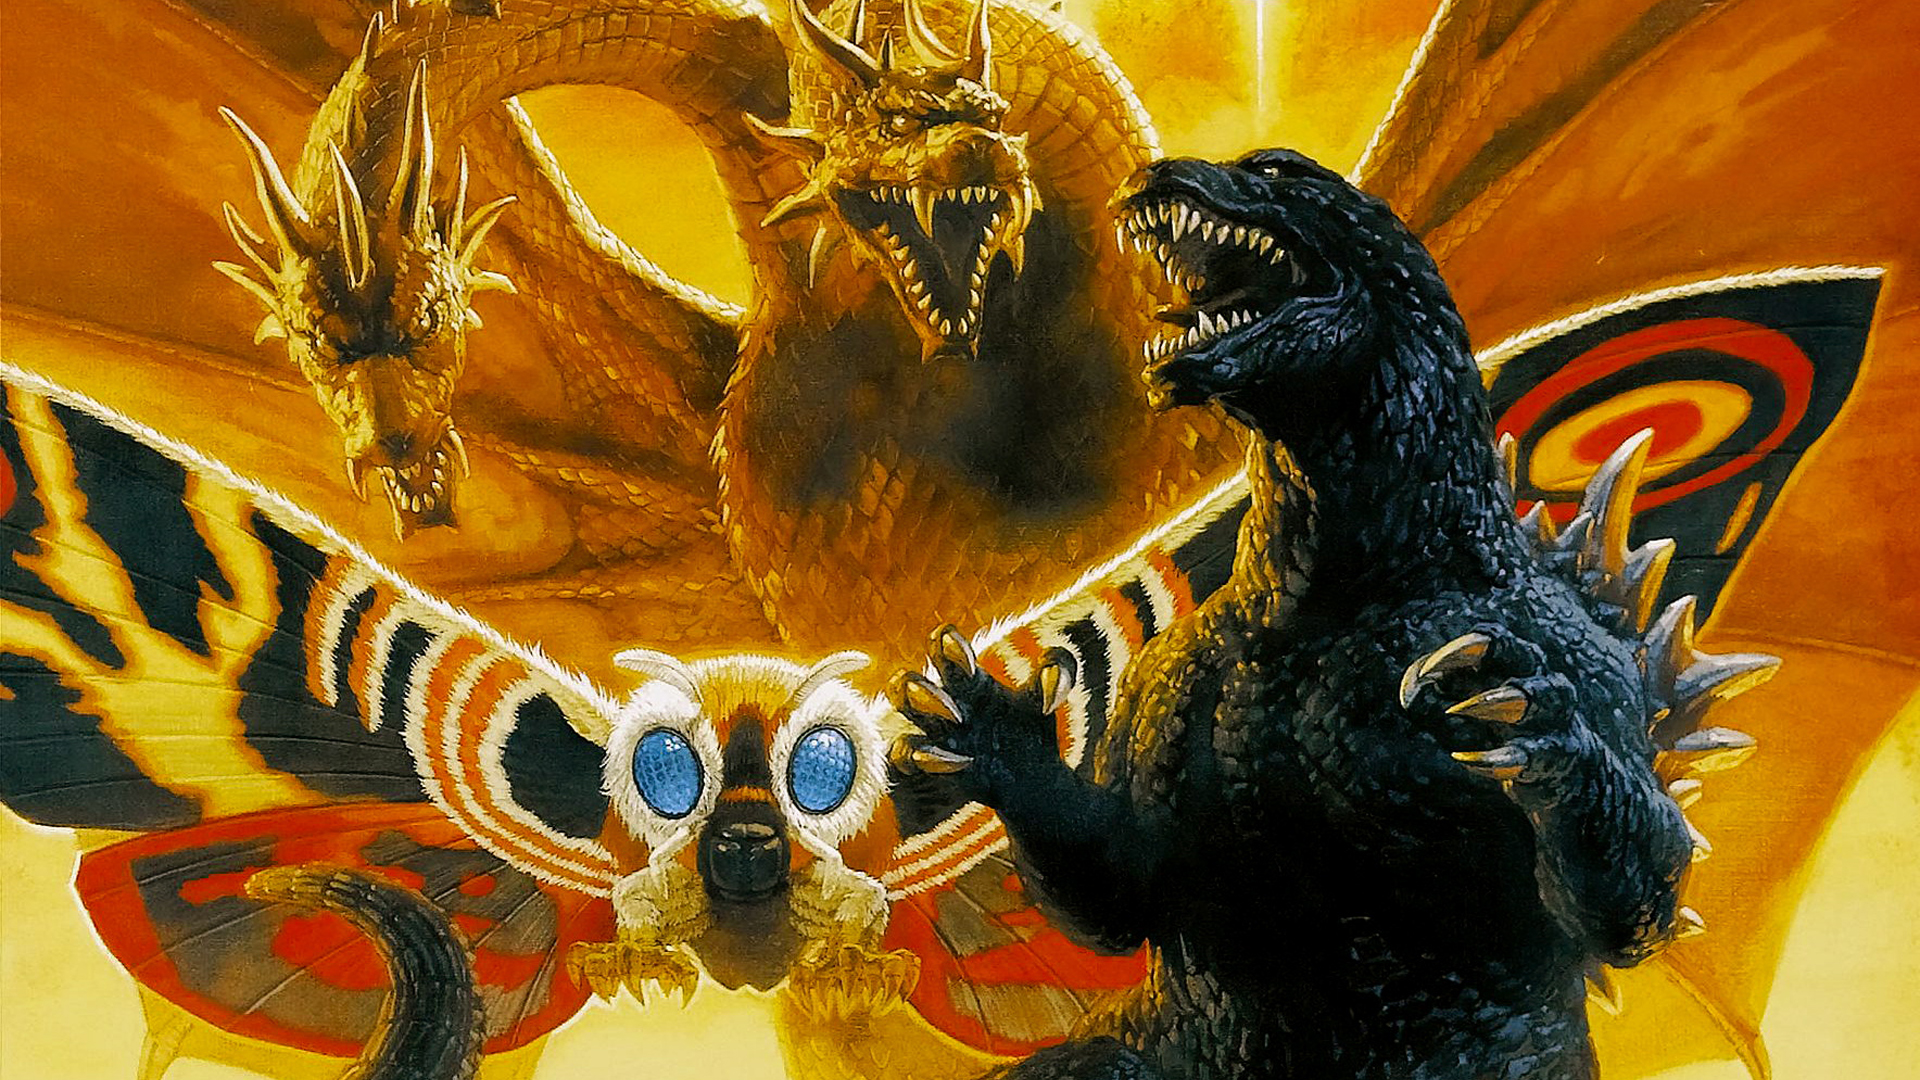 Godzilla, Mothra and King Ghidorah Hintergrund